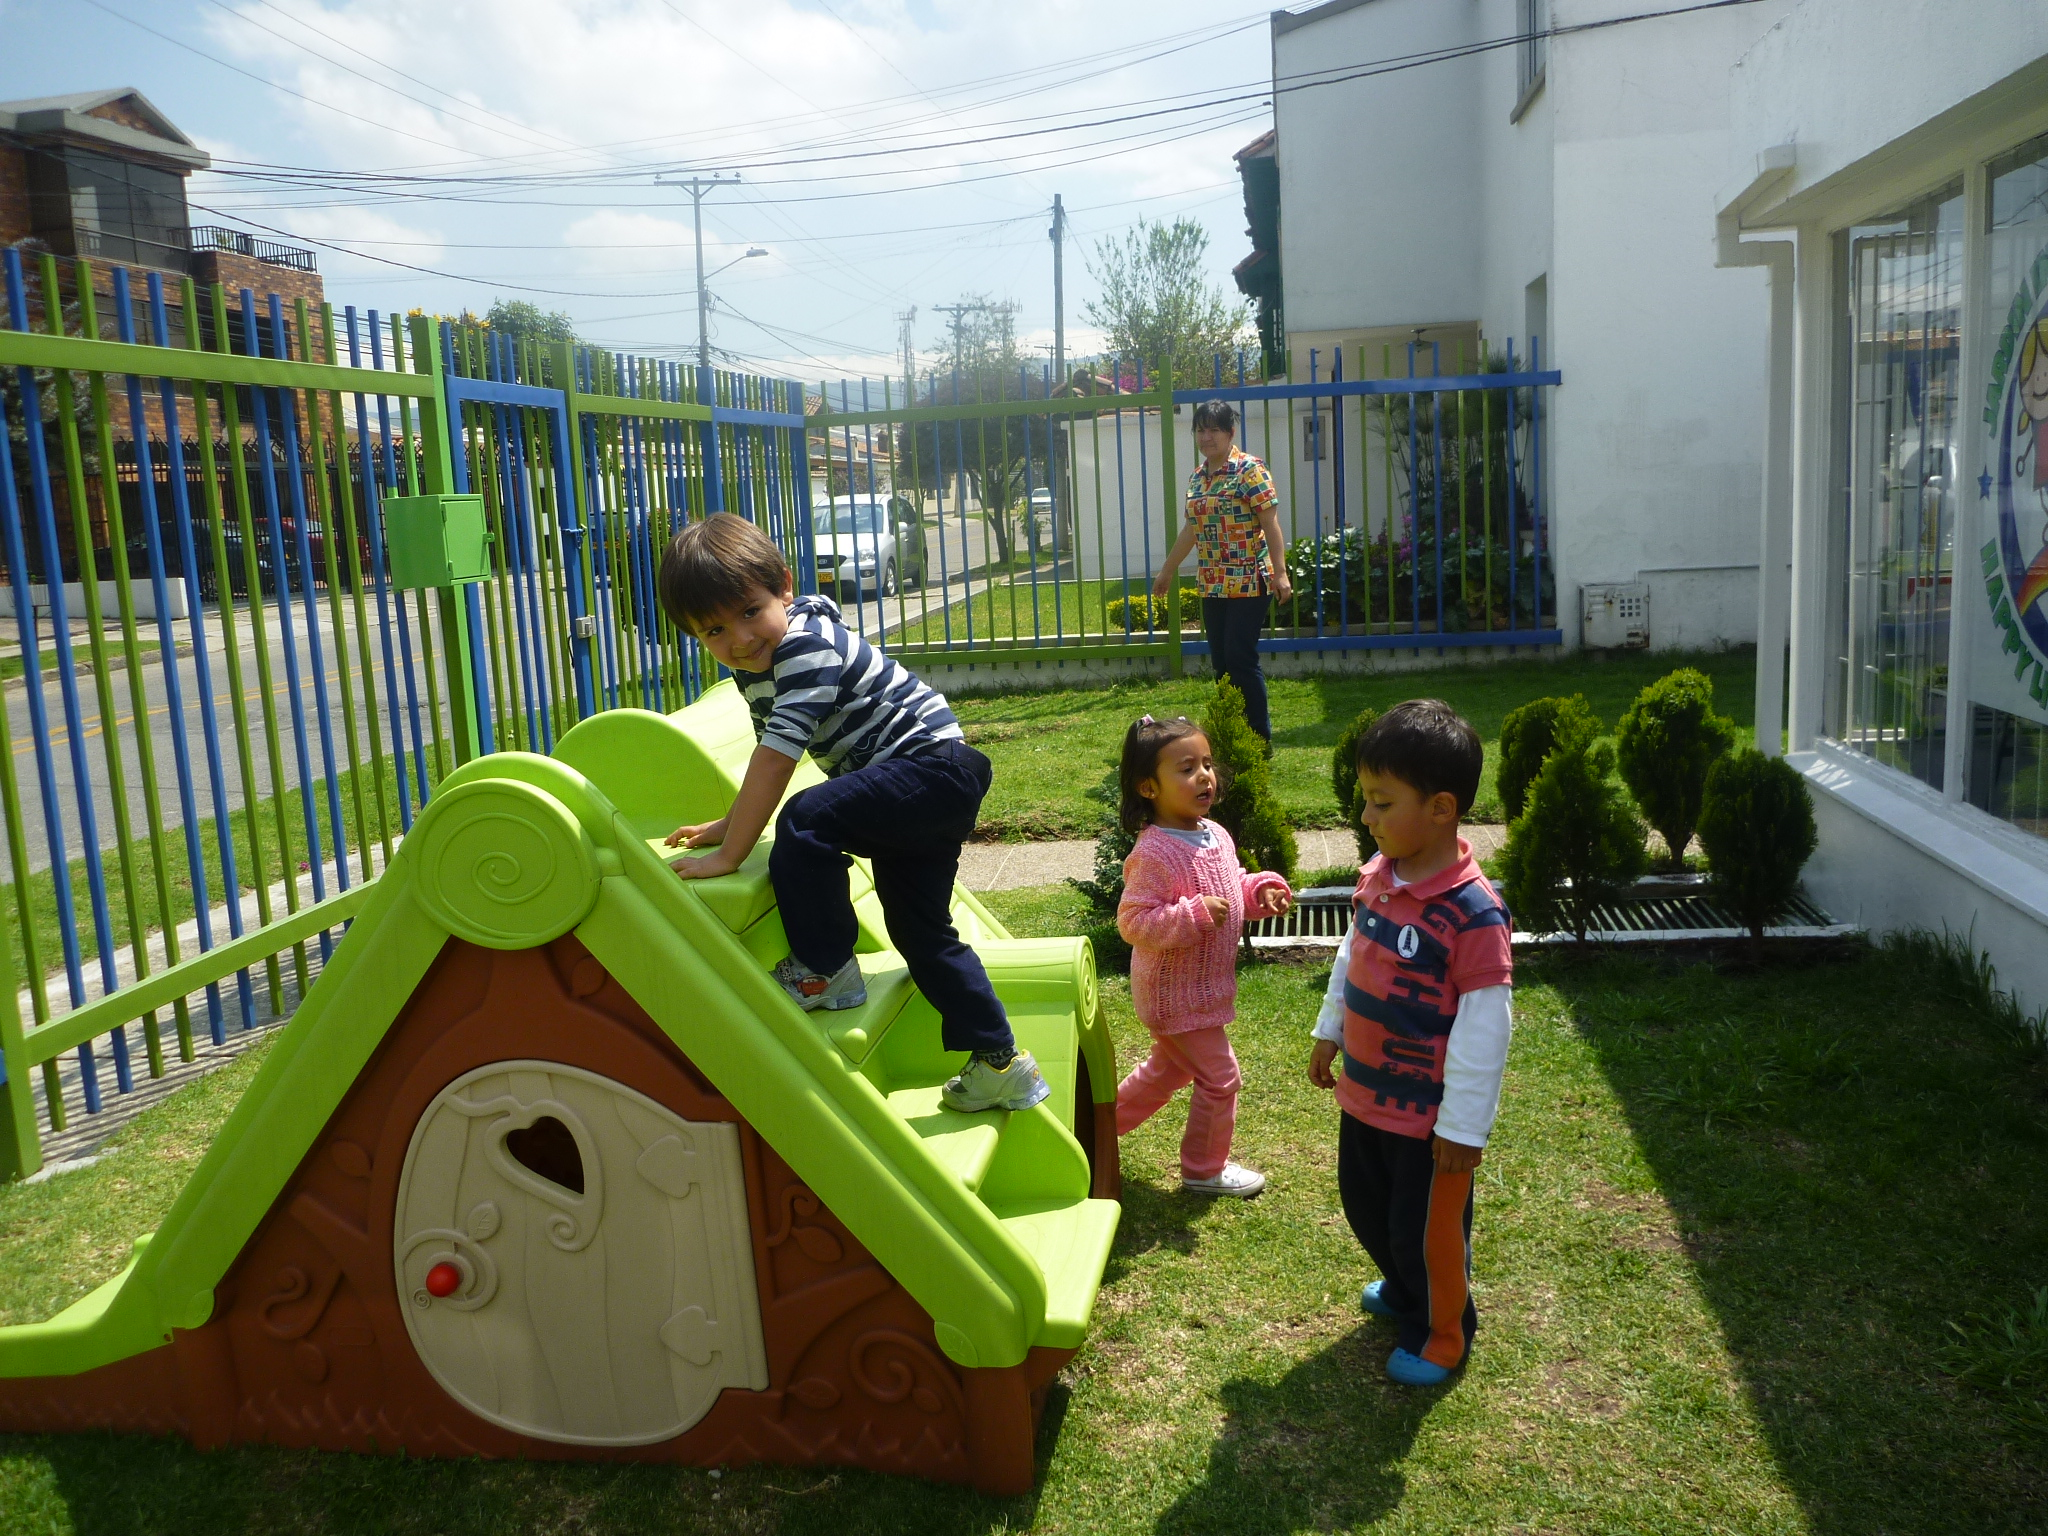 Galeria jard n infantil happy little people for Cascanueces jardin infantil bogota